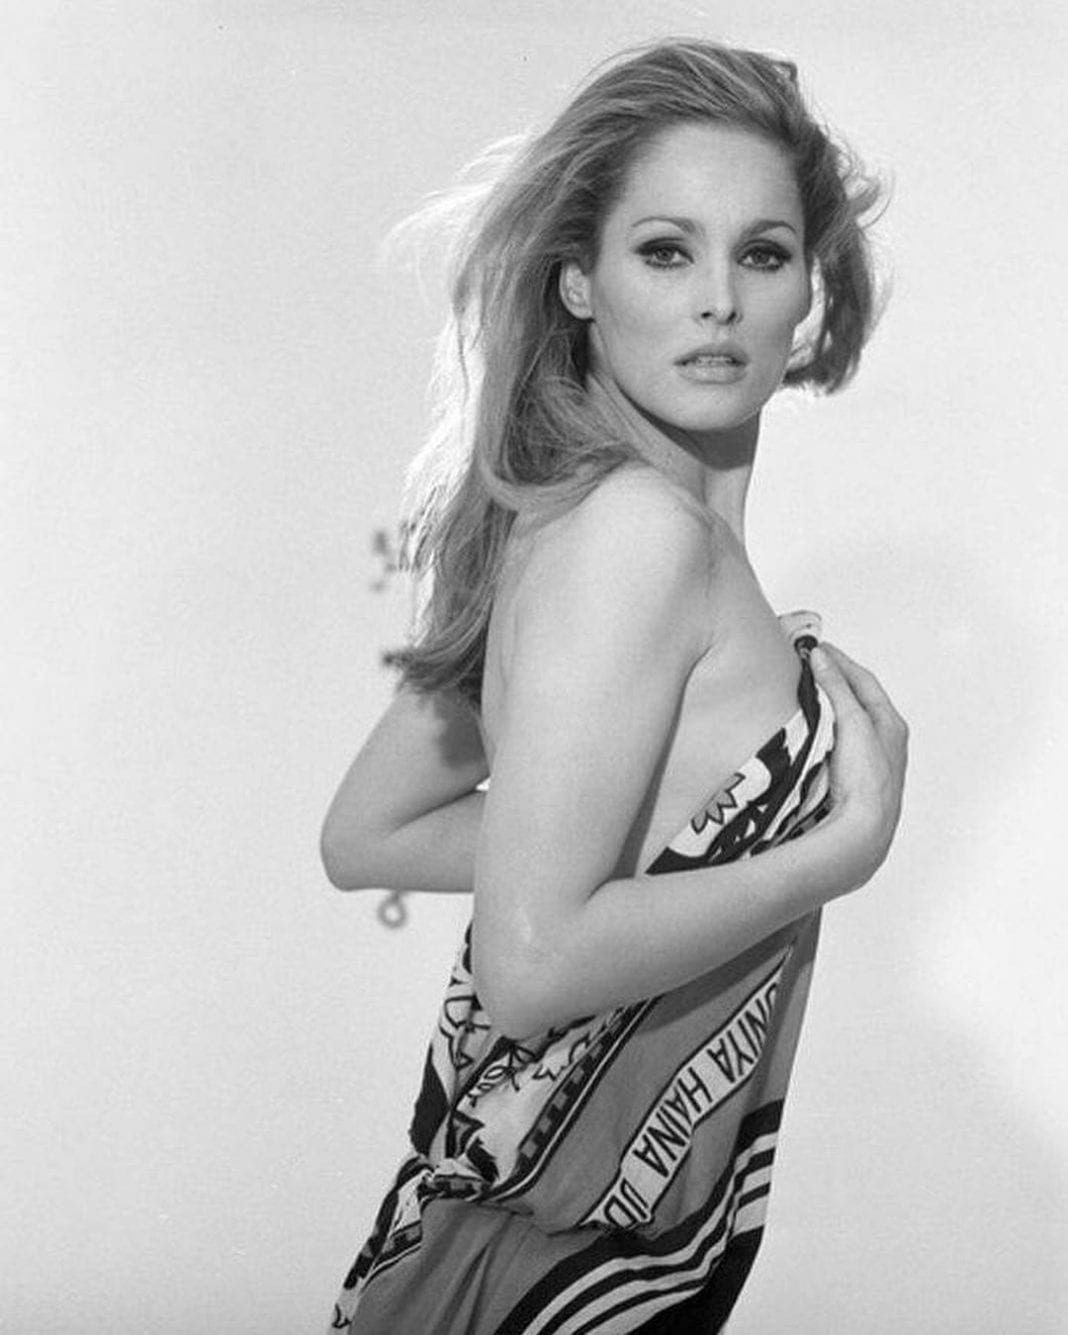 Ursula-Andress-hot-cleavage-pictures-1068x1335-min